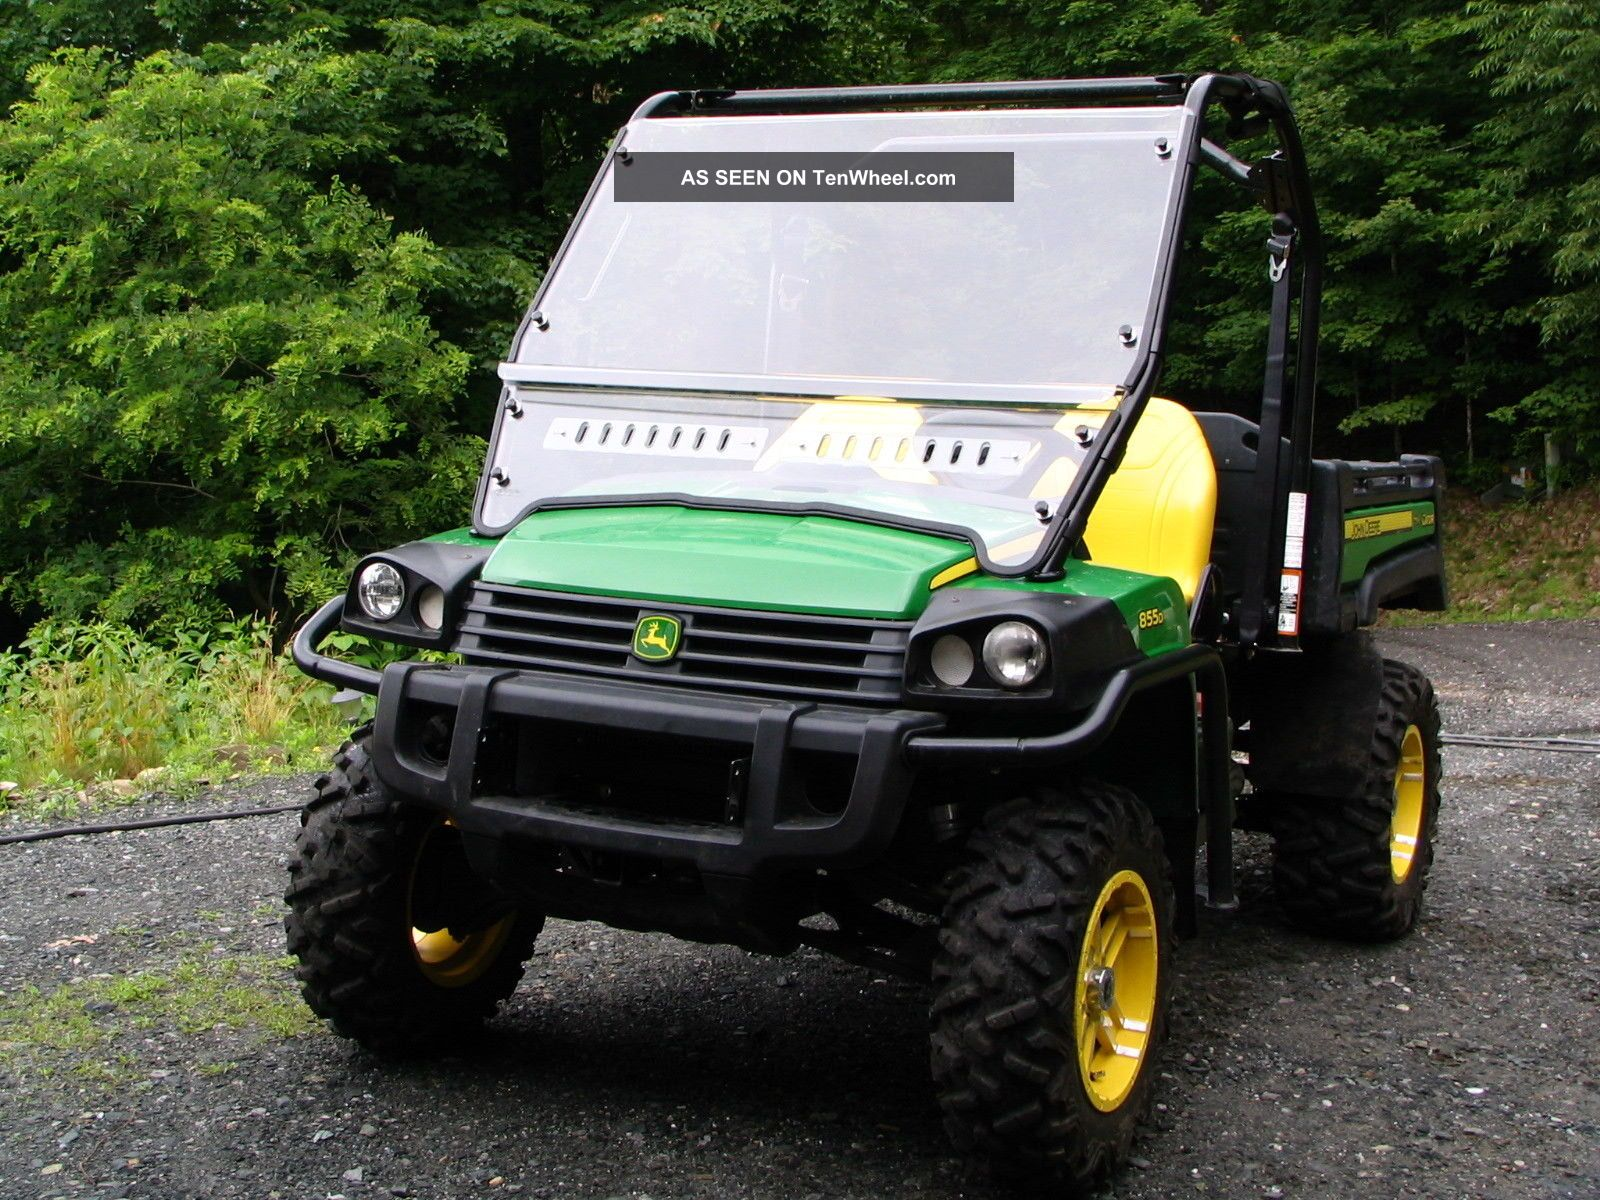 2012 John Deere Gator 855d UTVs photo